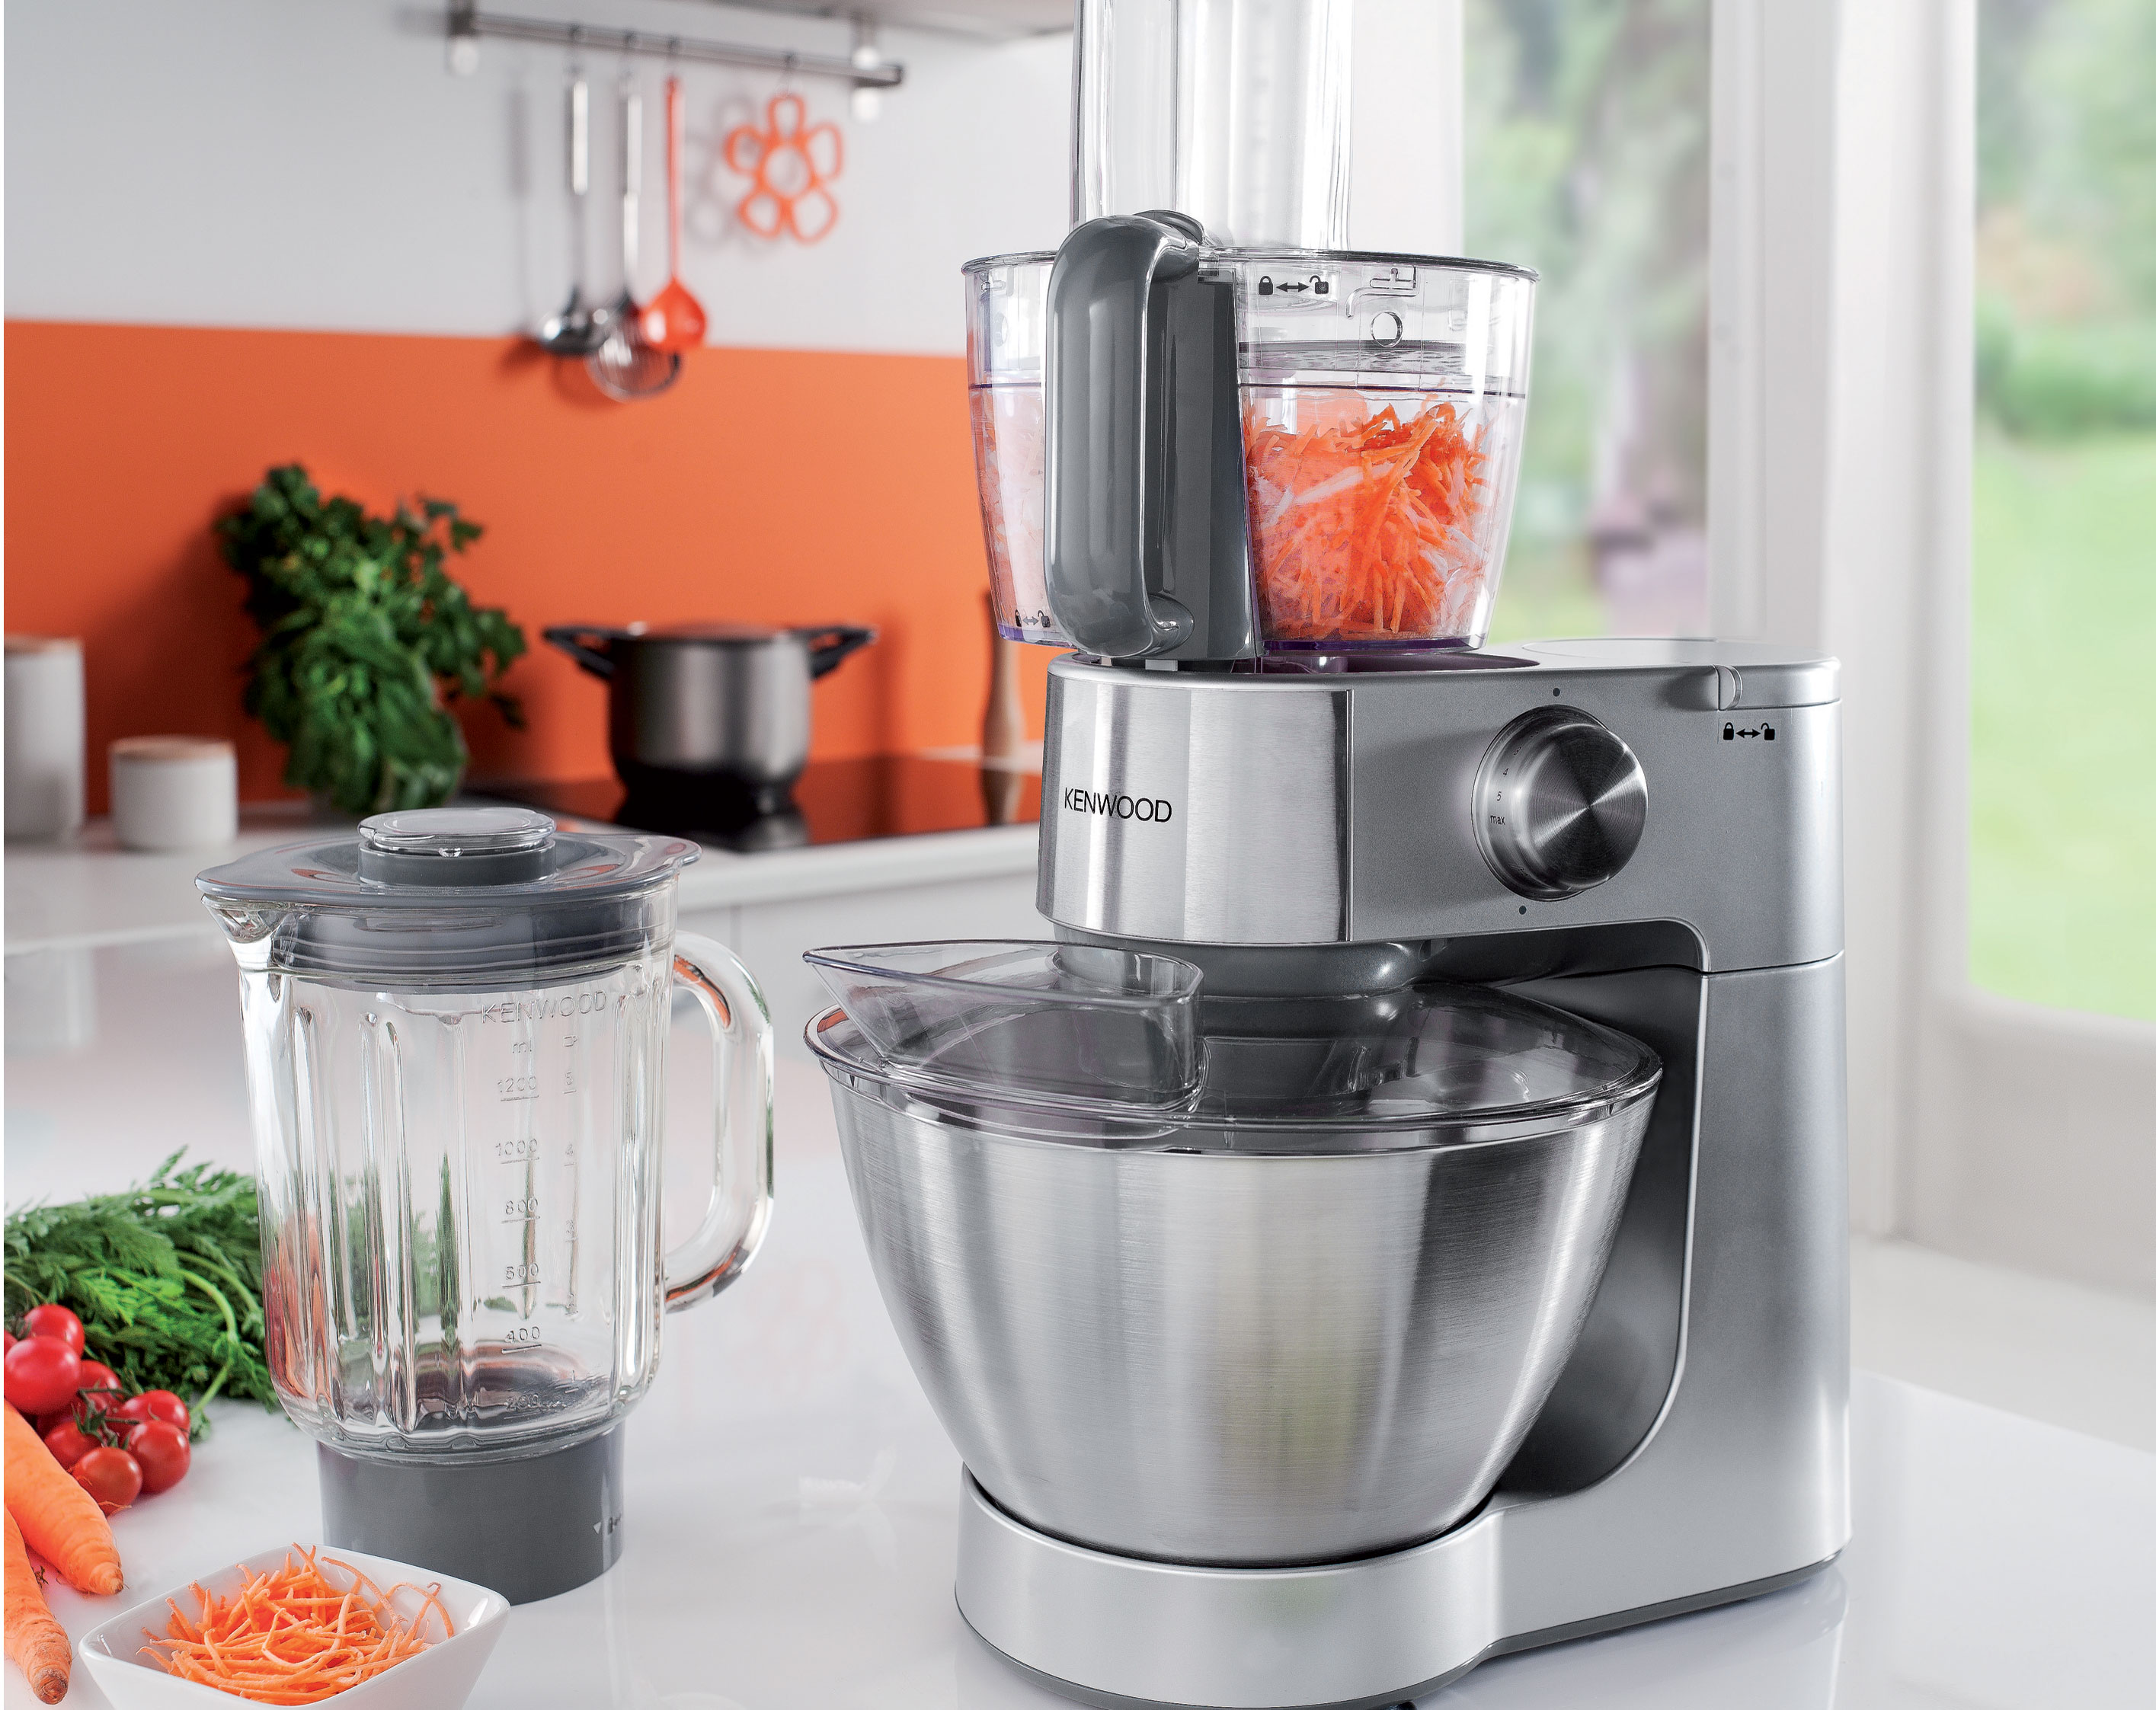 Kenwood fr cooking chef robots mixeurs plongeants blenders - Robots mixeurs et blenders ...